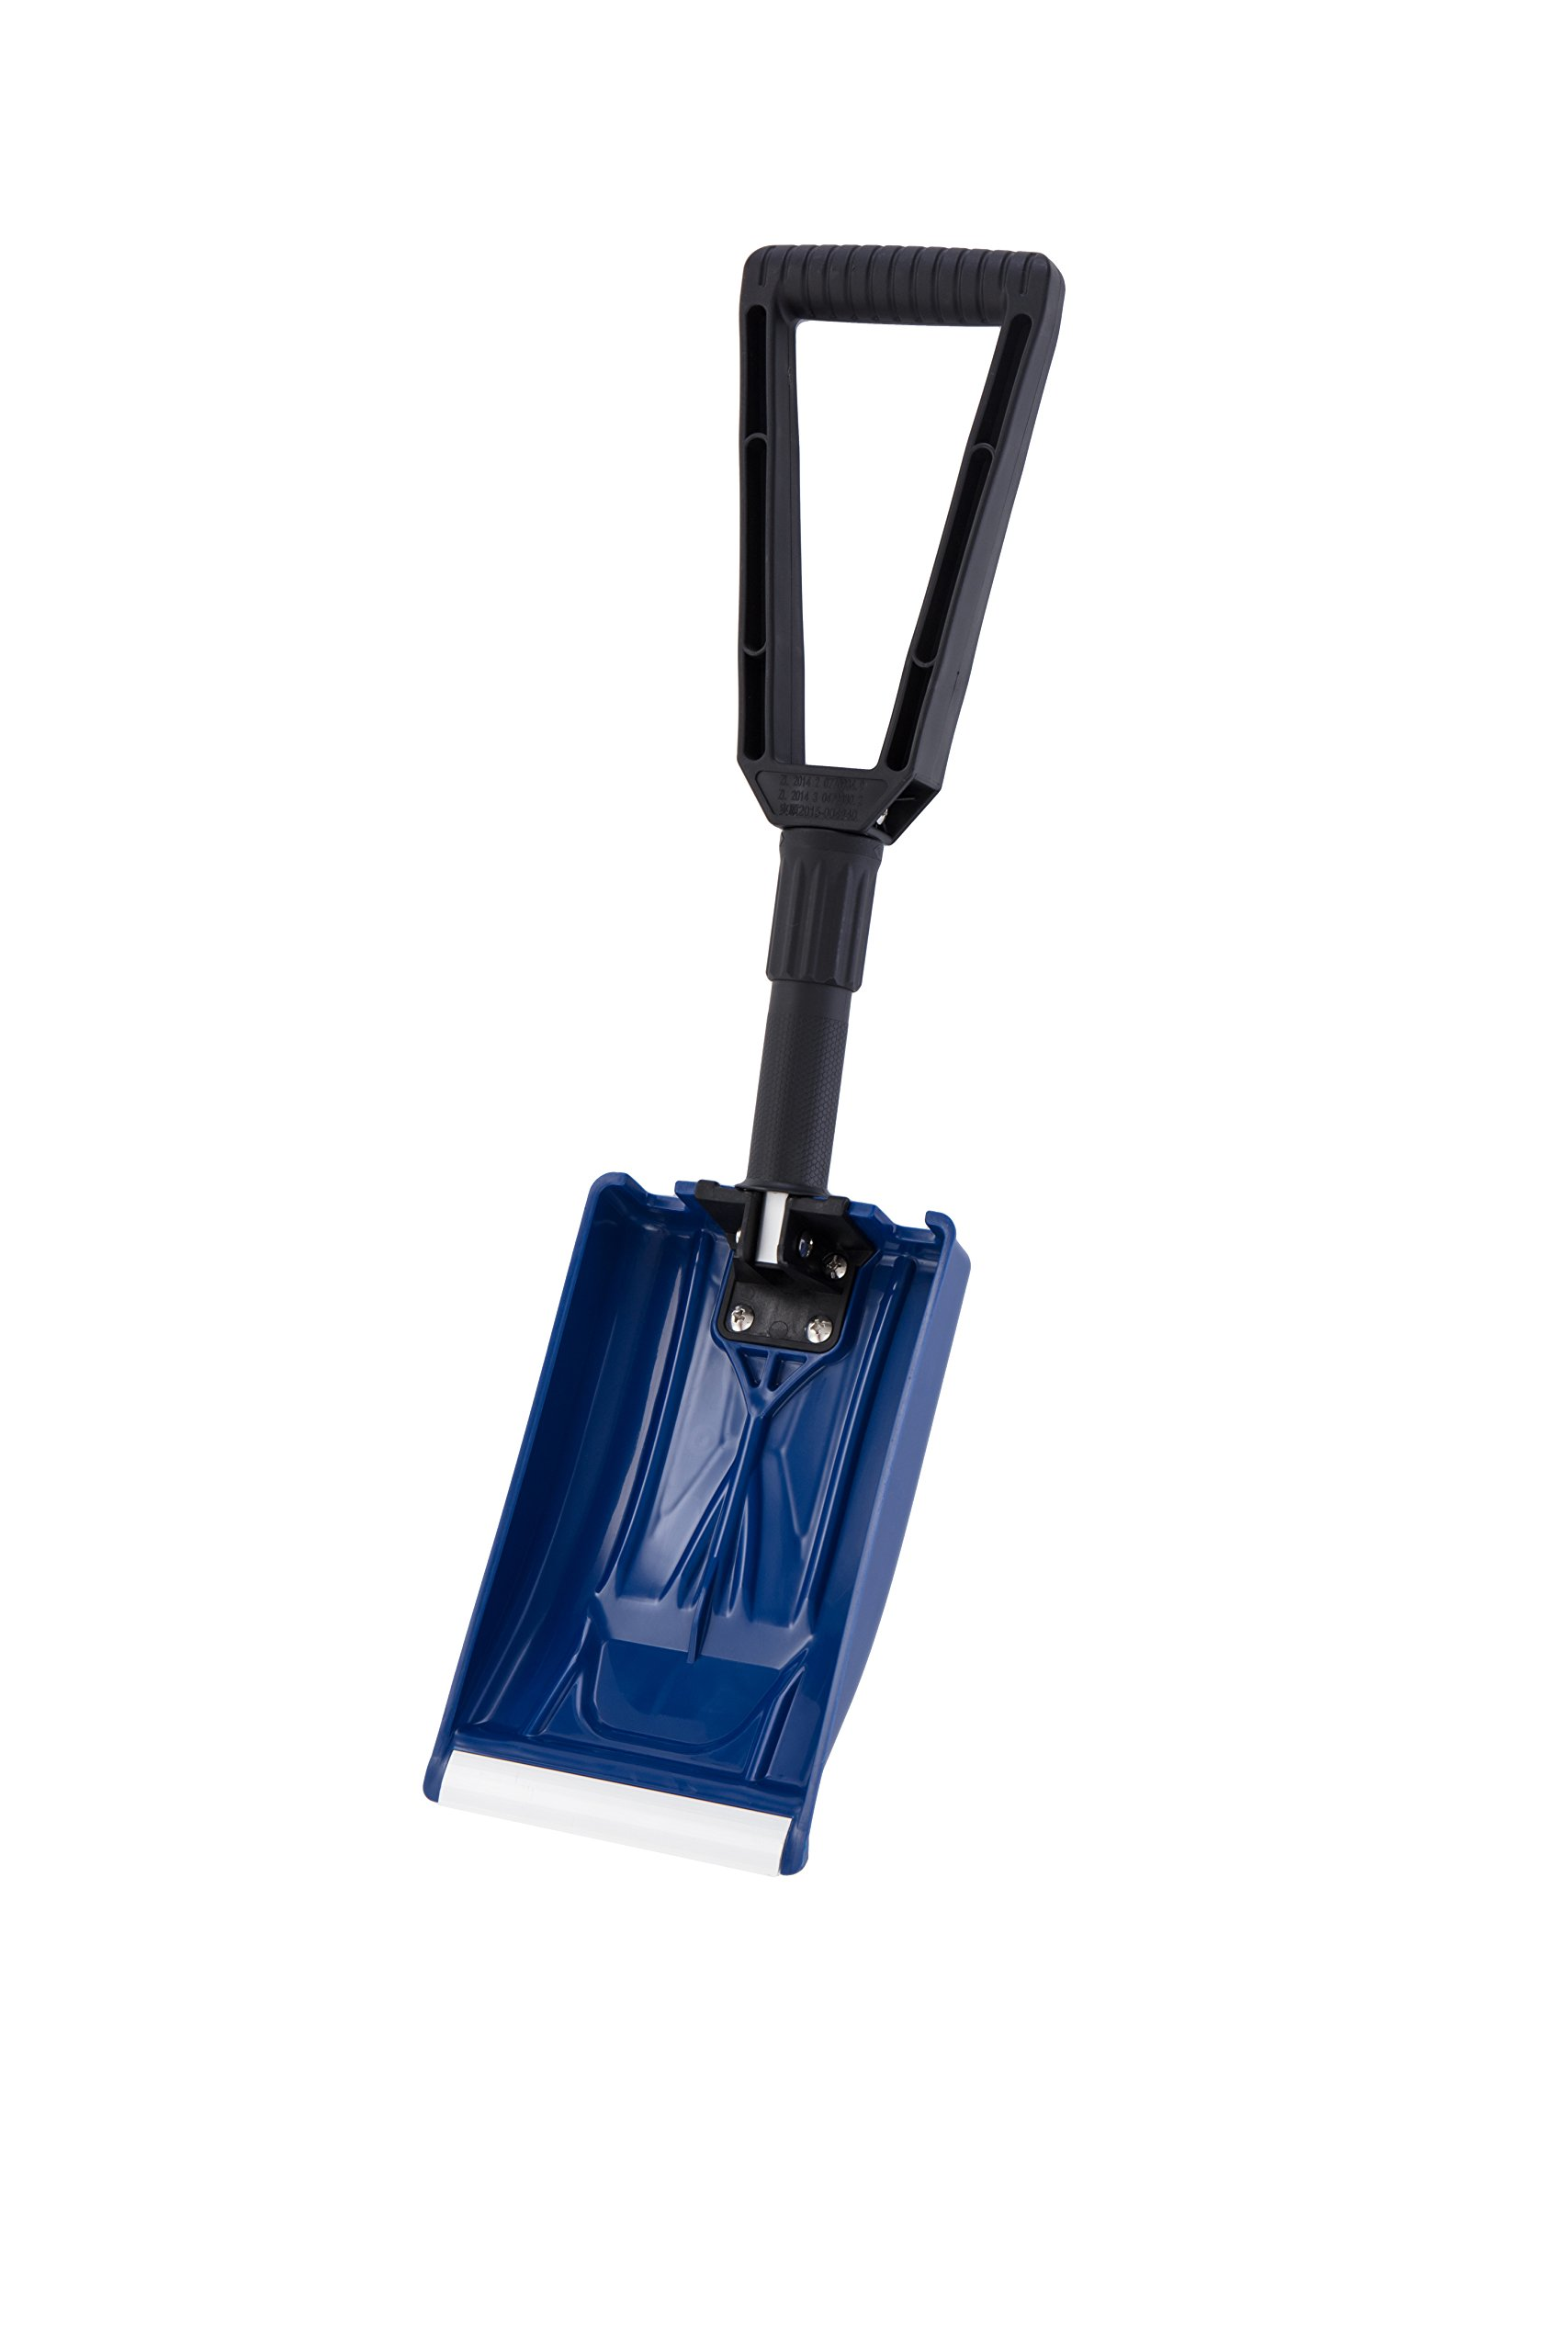 ORIENTOOLS Collapsible Folding Snow Shovel with Durable Aluminum Edge Blade (Blade 6'') by ORIENTOOLS (Image #1)